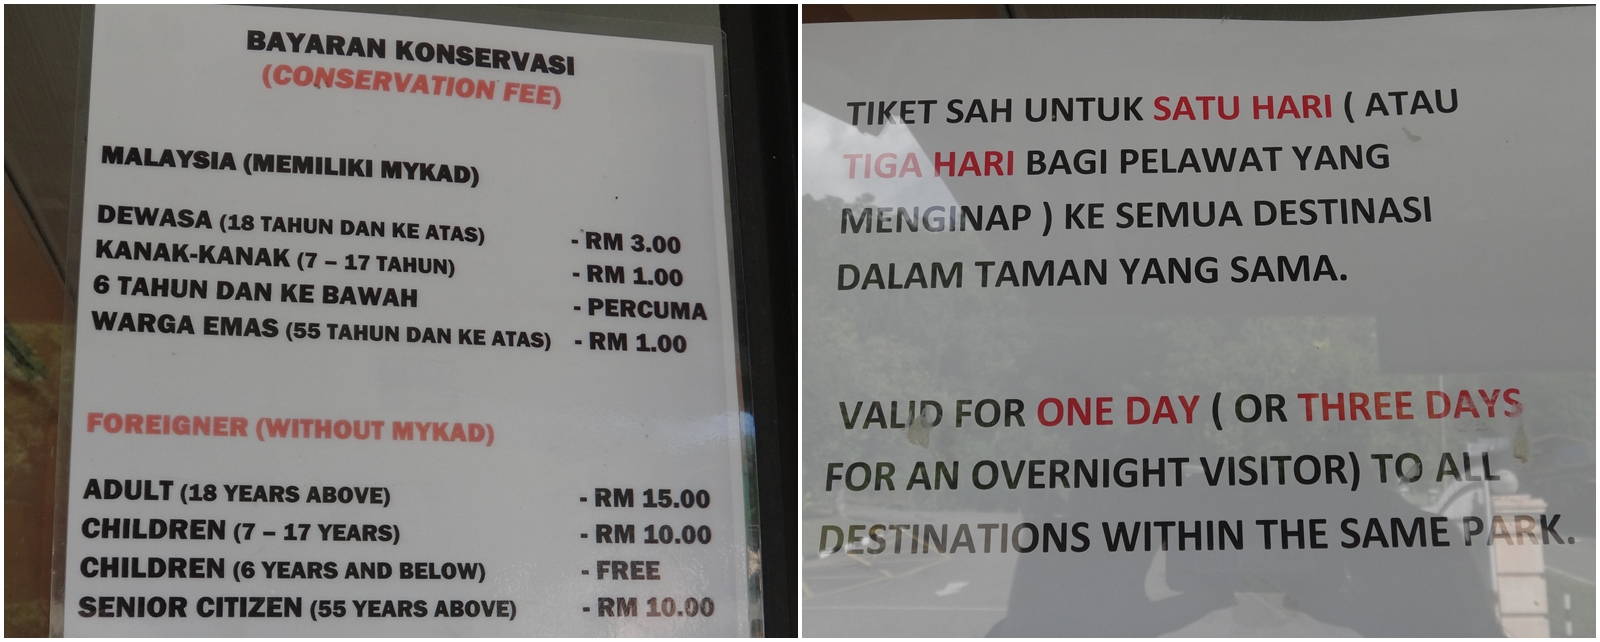 Trashzone July 2013 Ocean Park Fast Track Admission Package Anak 3 11 Thn Actually Dont Be Mistaken Both Are Located In The Same To Go Canopy Walk U Need Thru Hot Spring Area Just Follow Signage